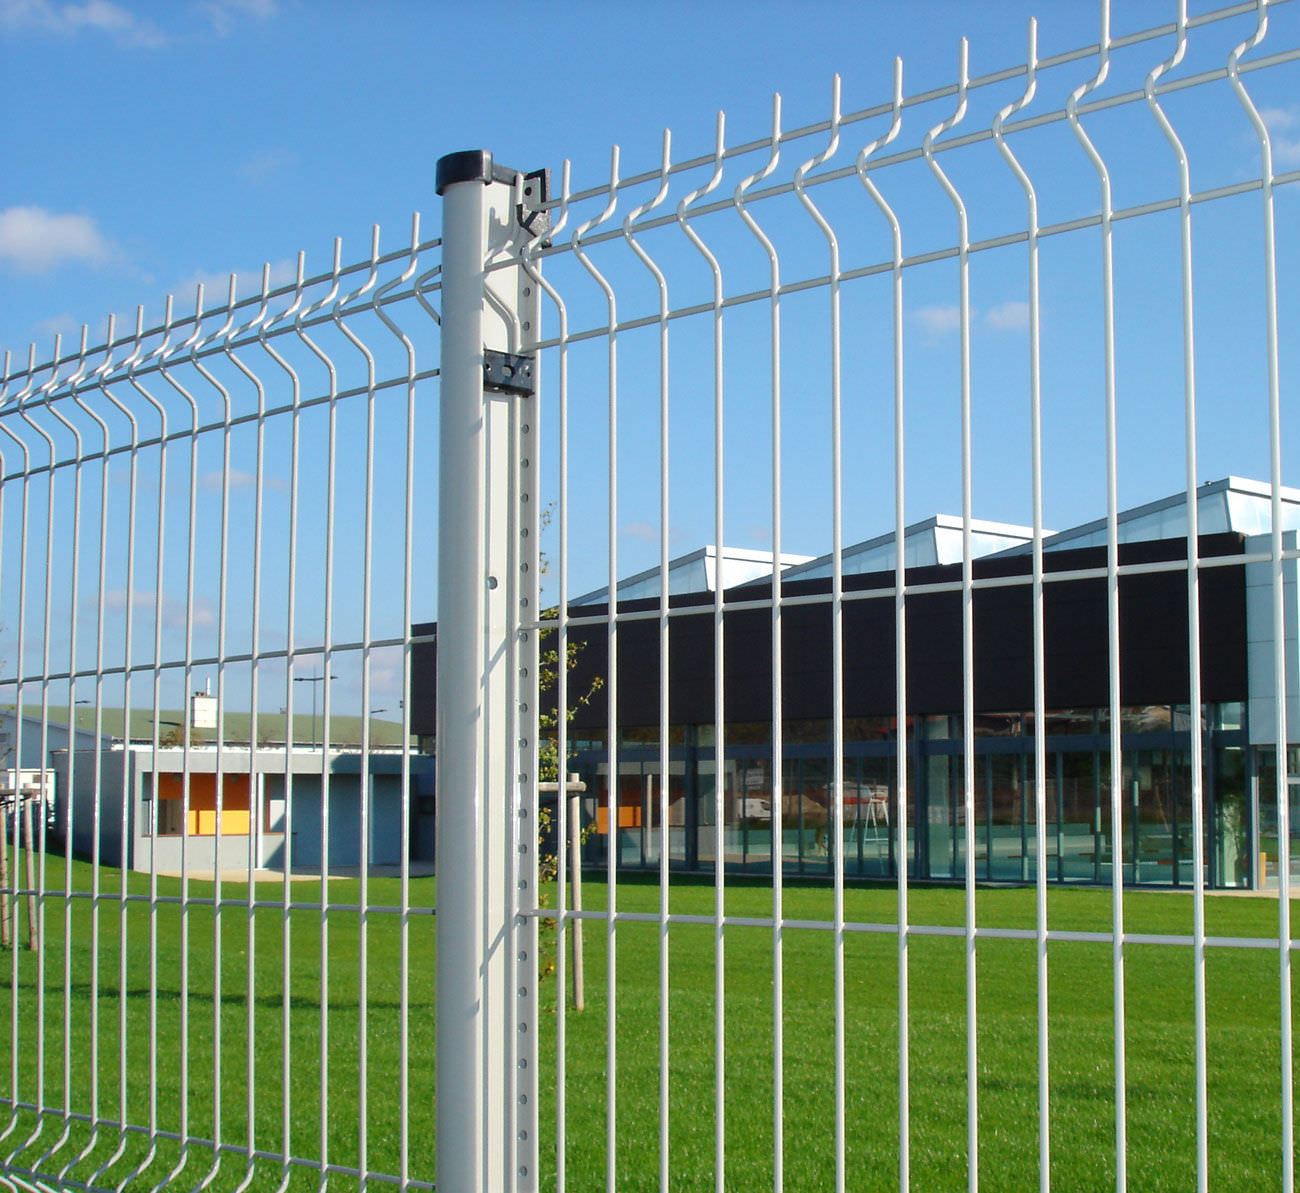 Industrial fence / welded mesh / galvanized steel / security ...